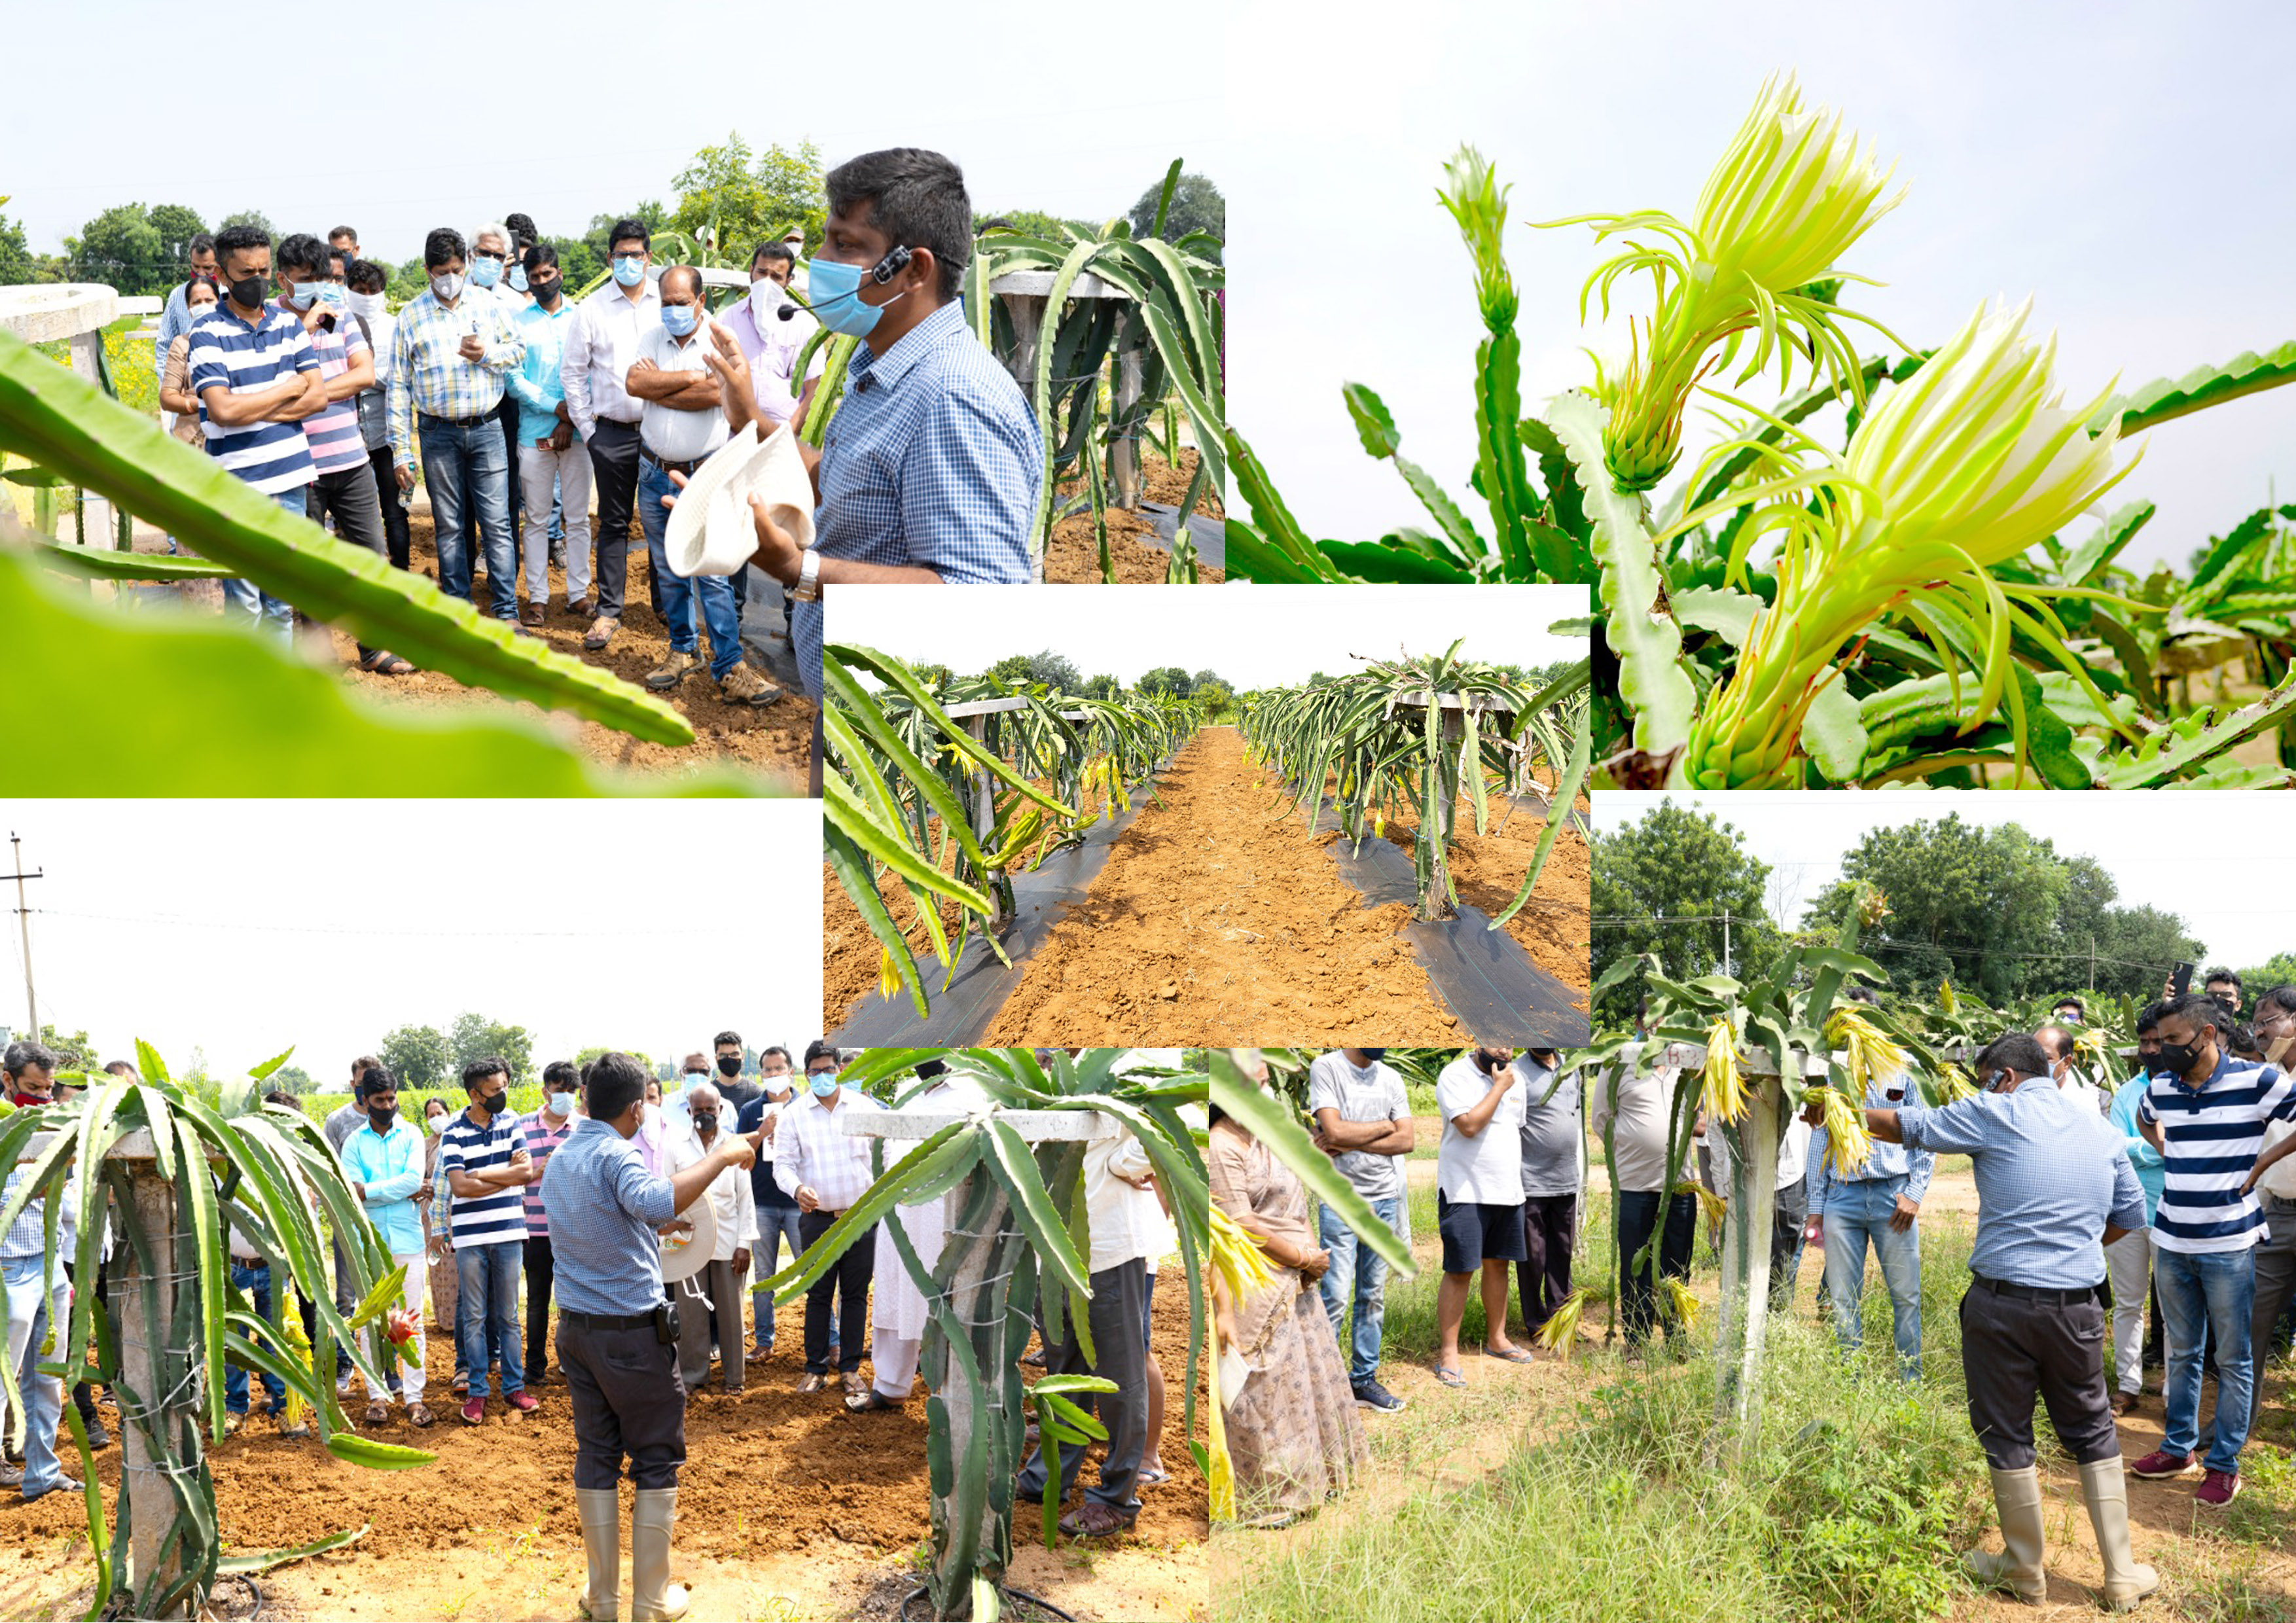 Farm visit to Deccanexotics by farmers and enthusiasts across 9 different states